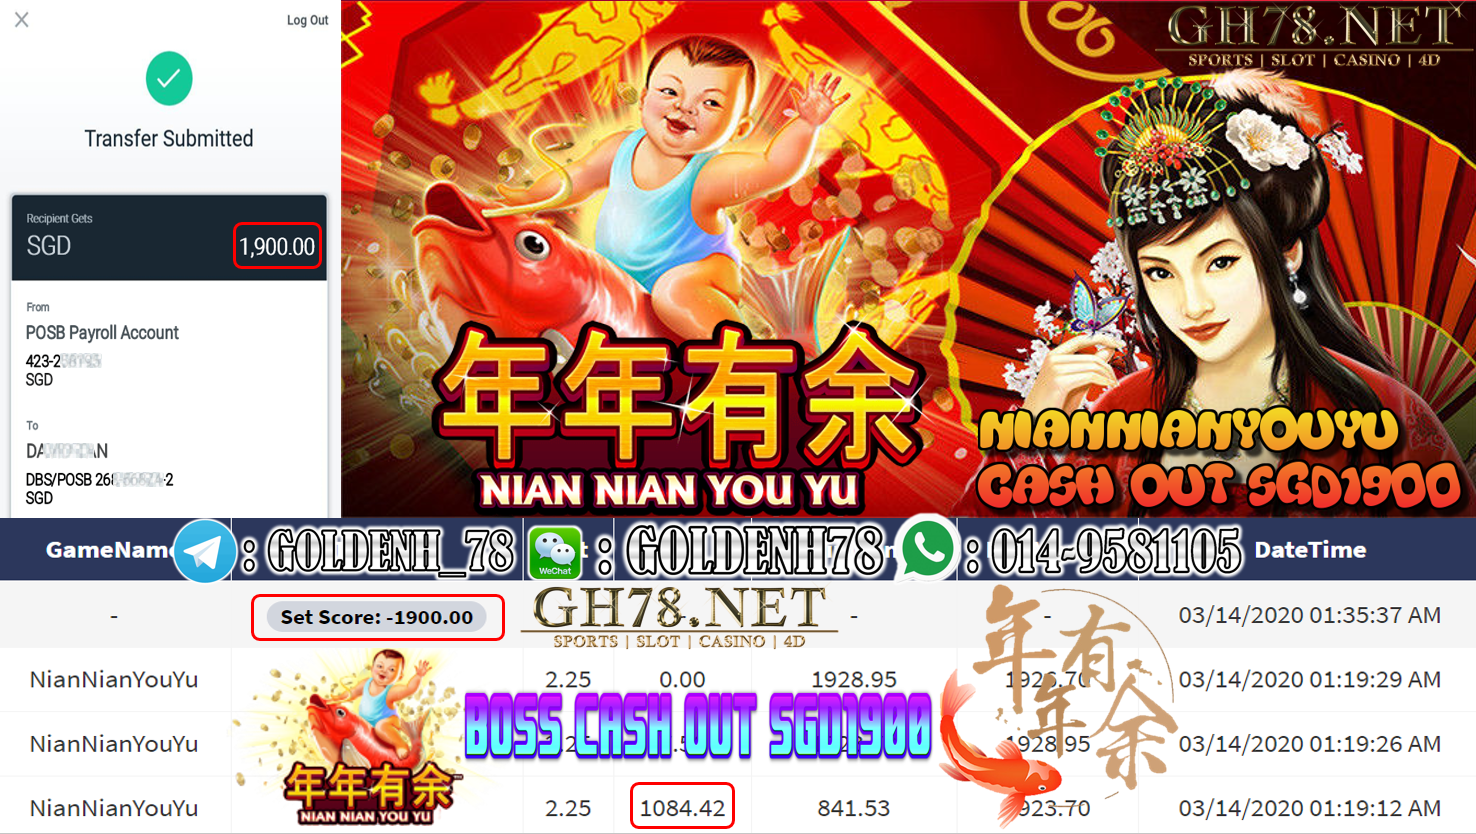 MEMBER MAIN XE88 GAME NIAN NIAN YOU YU MINTA OUT $1900!!!!